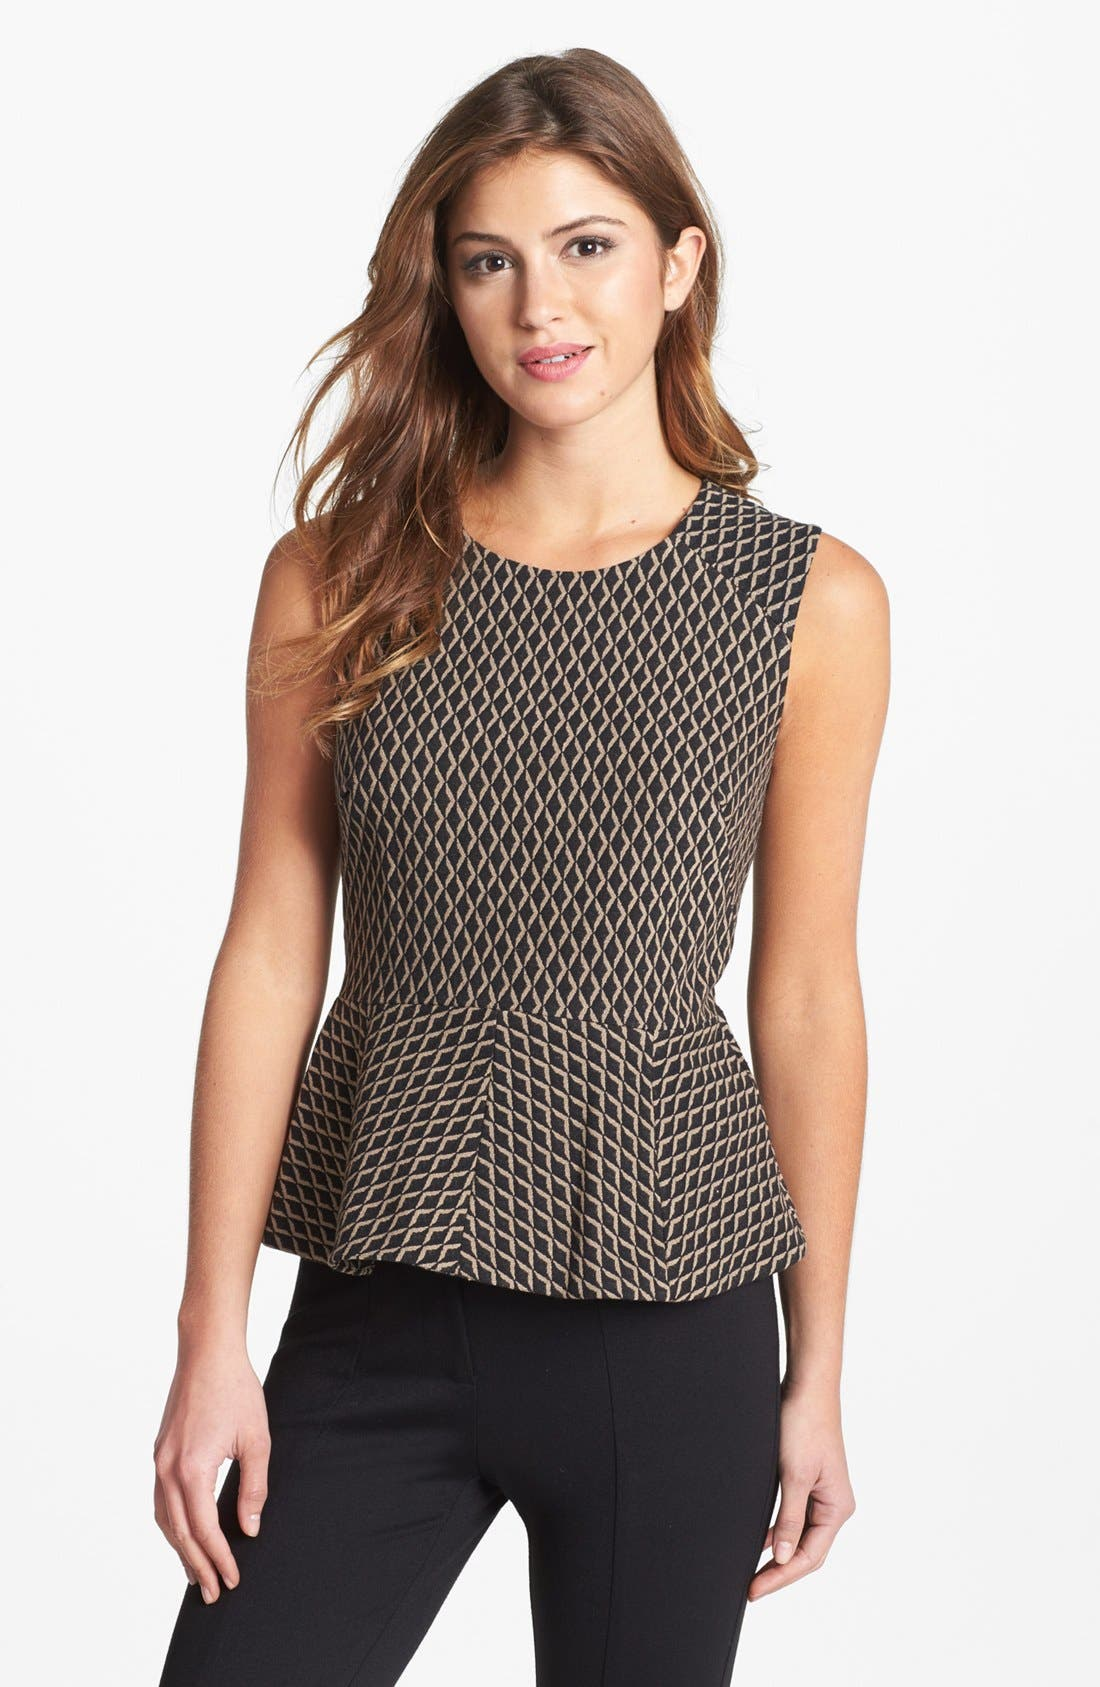 Main Image - Vince Camuto Diamond Print Sleeveless Peplum Blouse